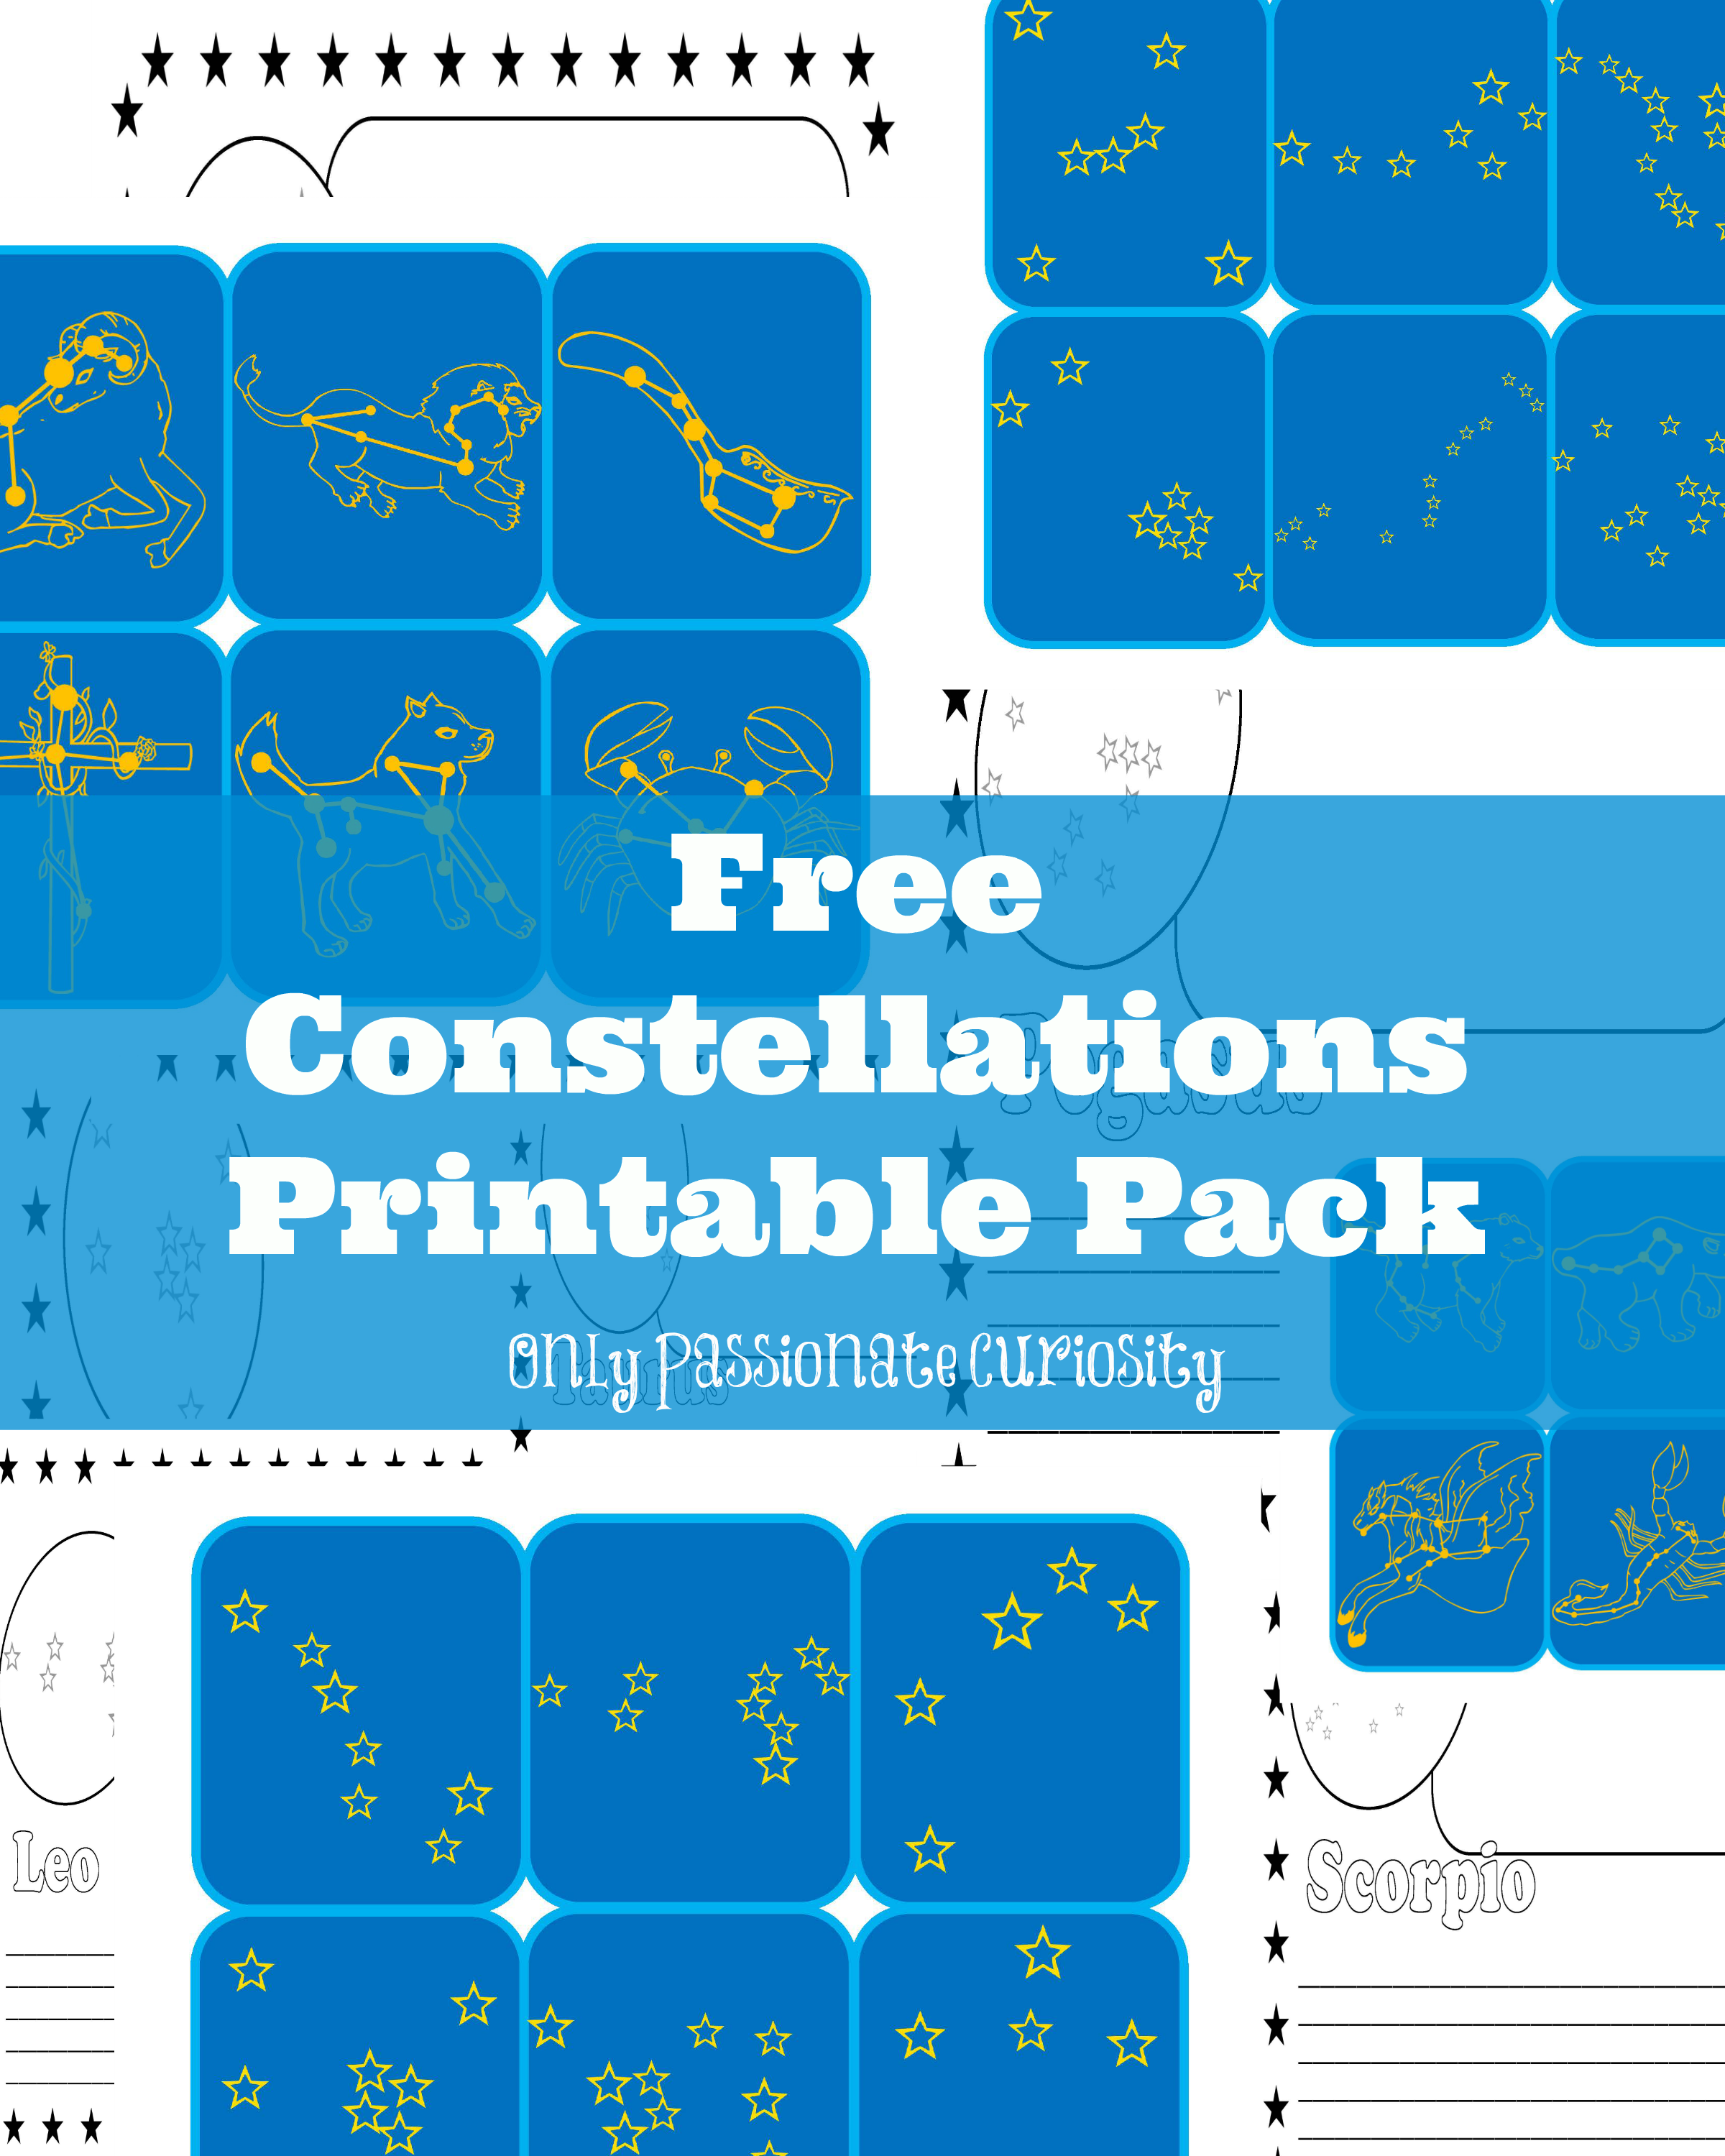 worksheet Constellation Worksheet 78 images about astronomy for kids on pinterest constellation chart solar system and model